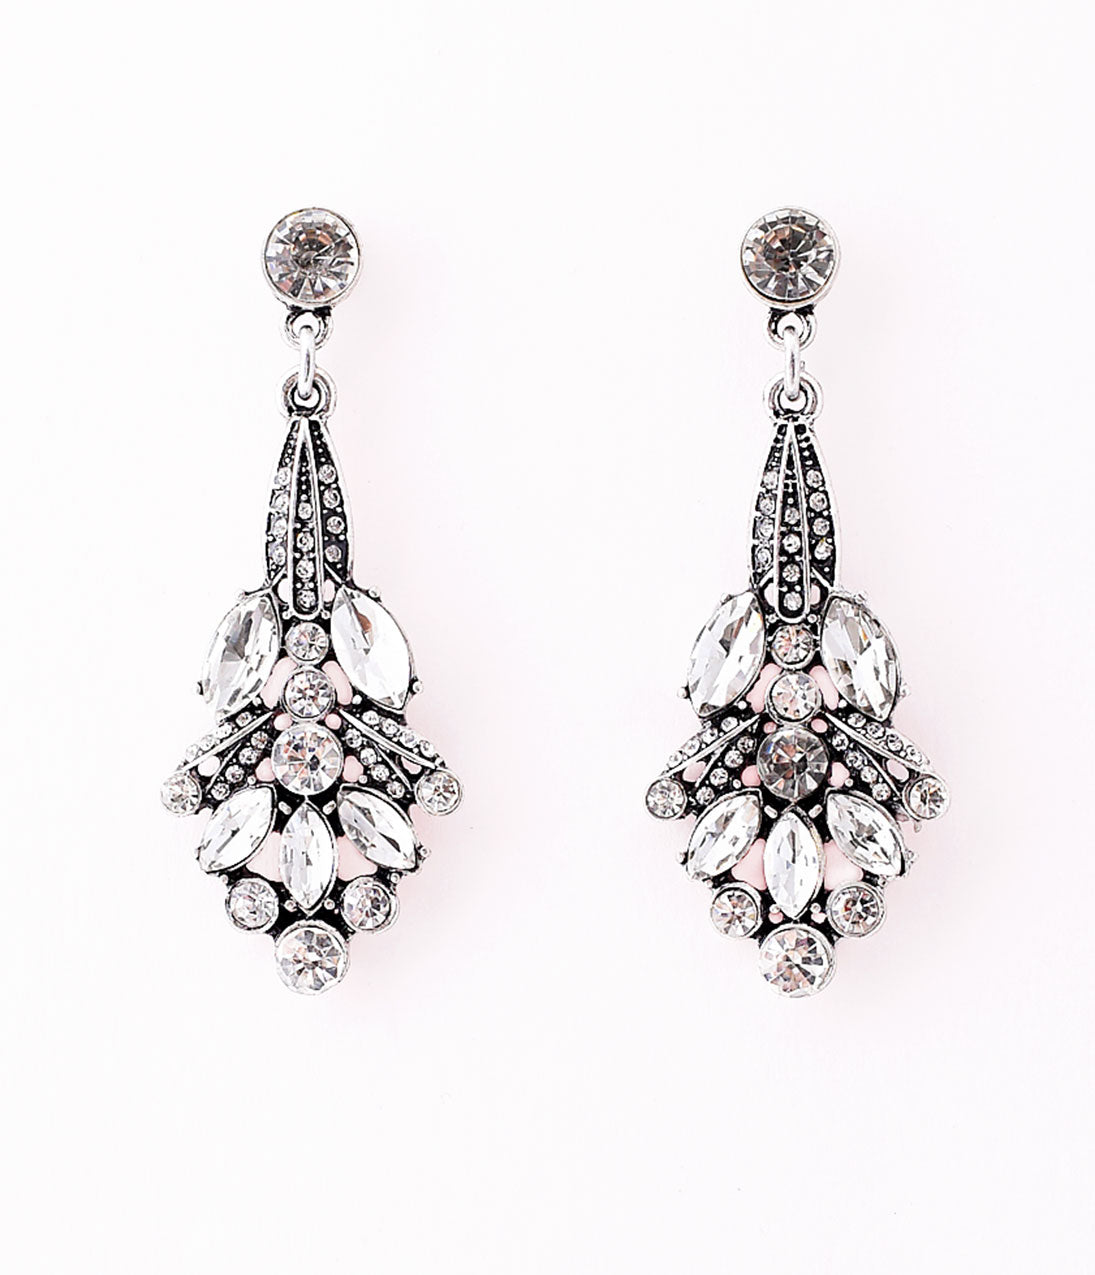 1920s Accessories | Great Gatsby Accessories Guide 1920S Style Silver Rhinestone Nouveau Flower Drop Earrings $34.00 AT vintagedancer.com